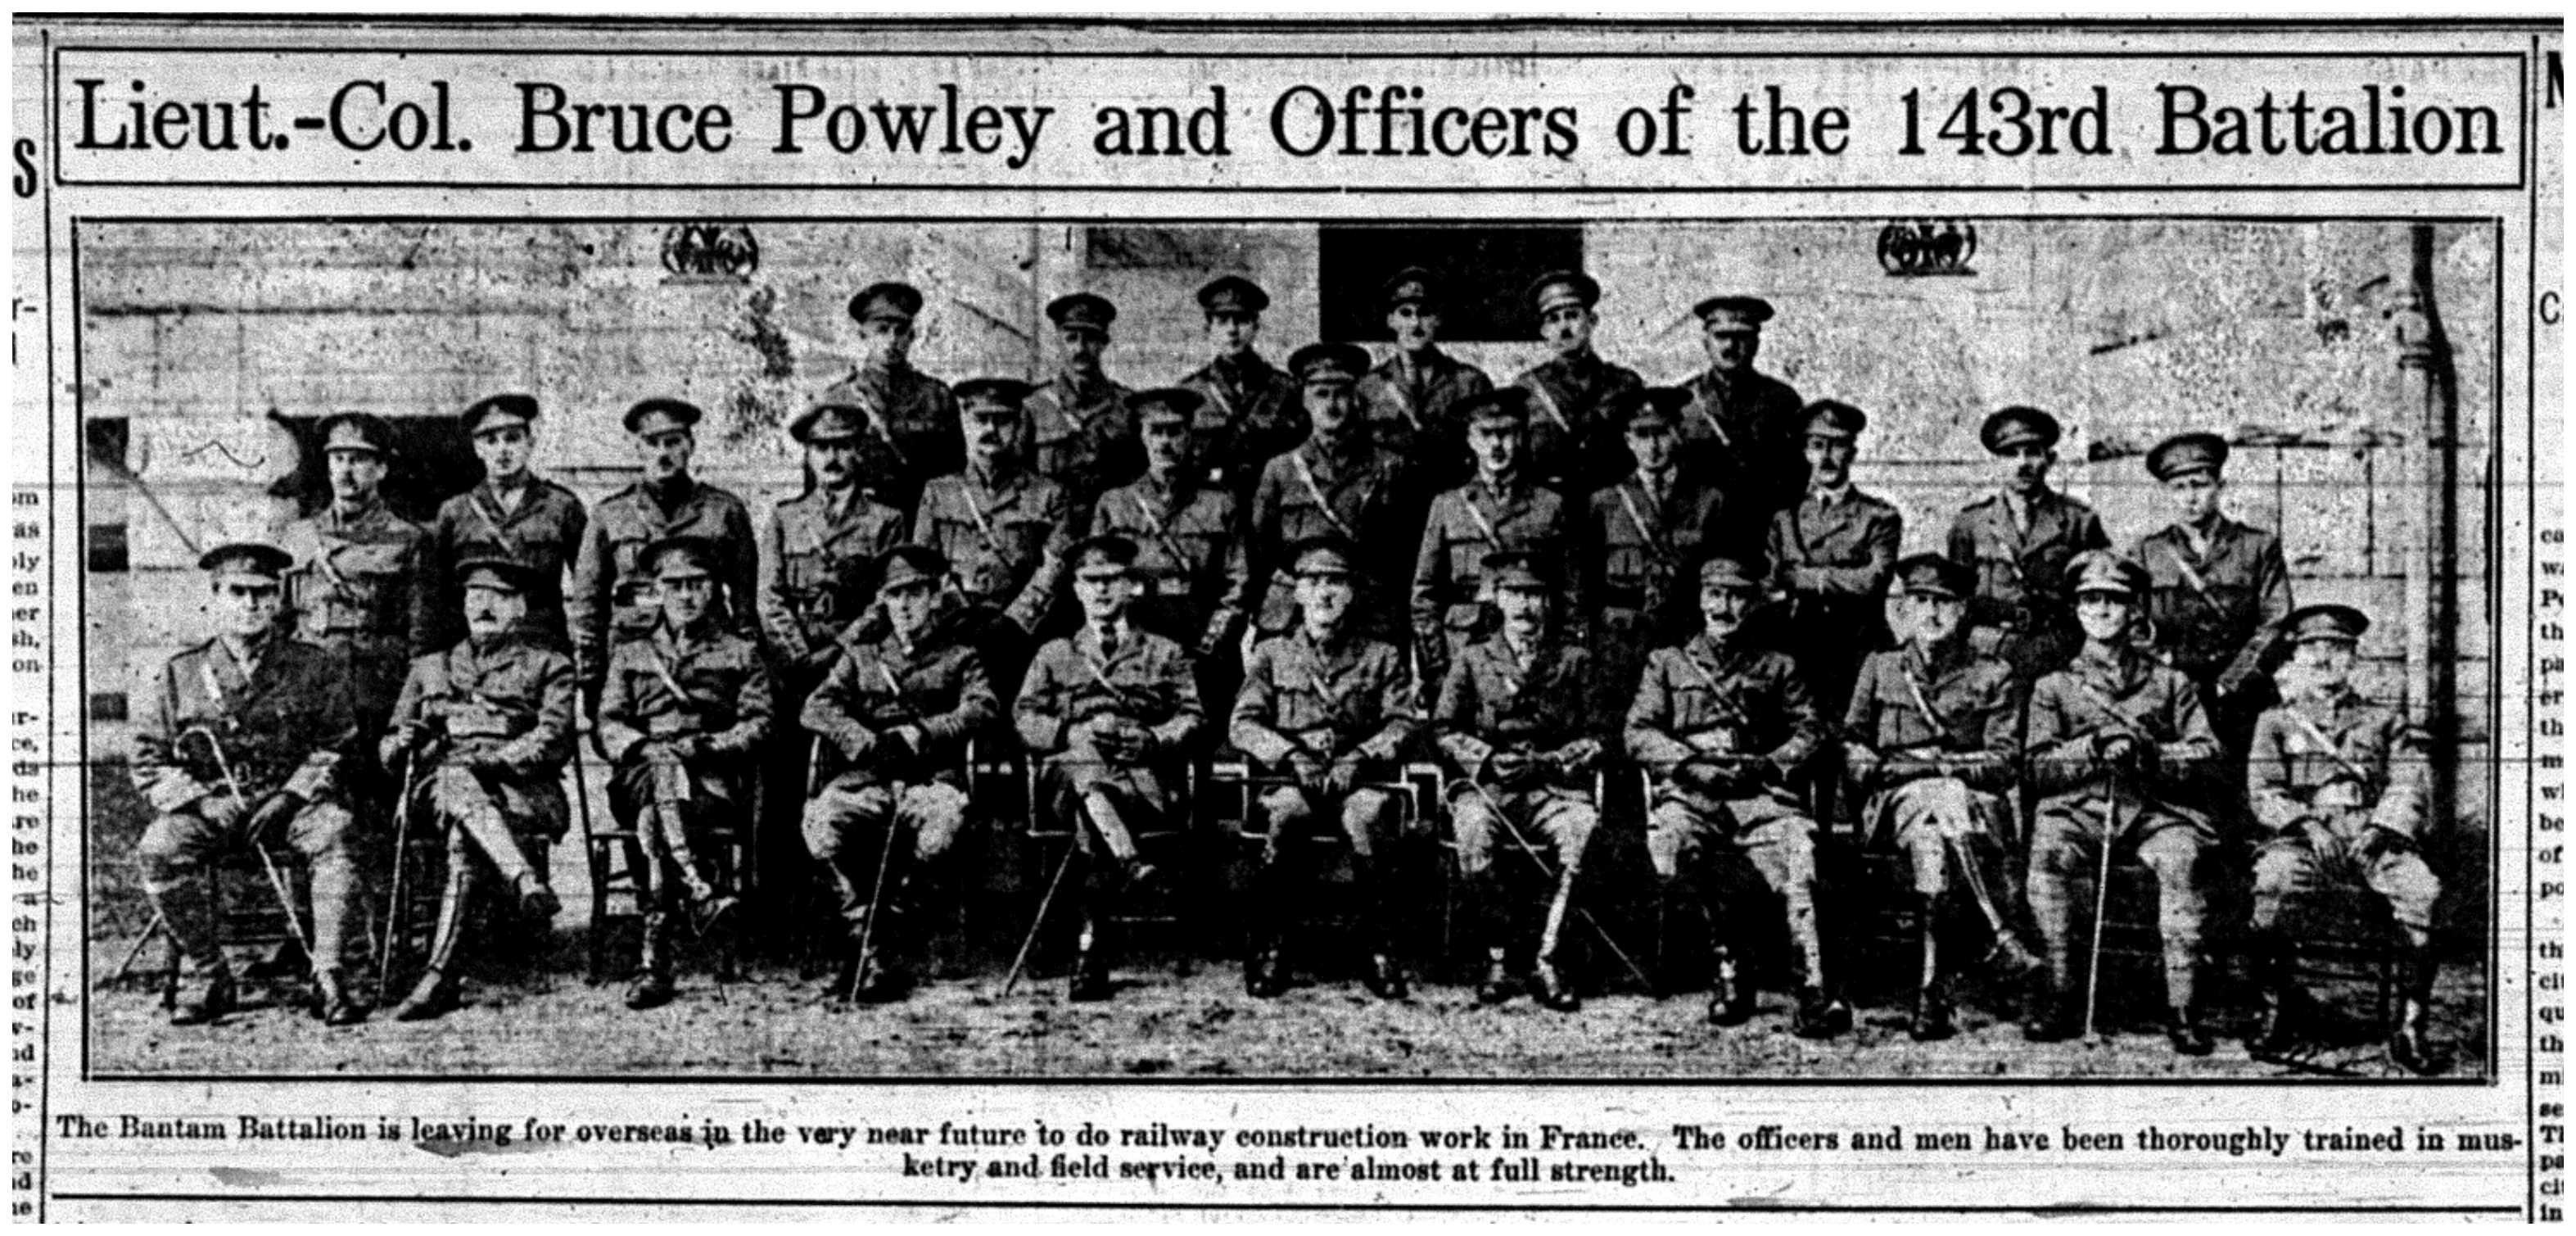 """Lieut.-Col. Bruce Powley and Offciers of the 143rd Battalion"""